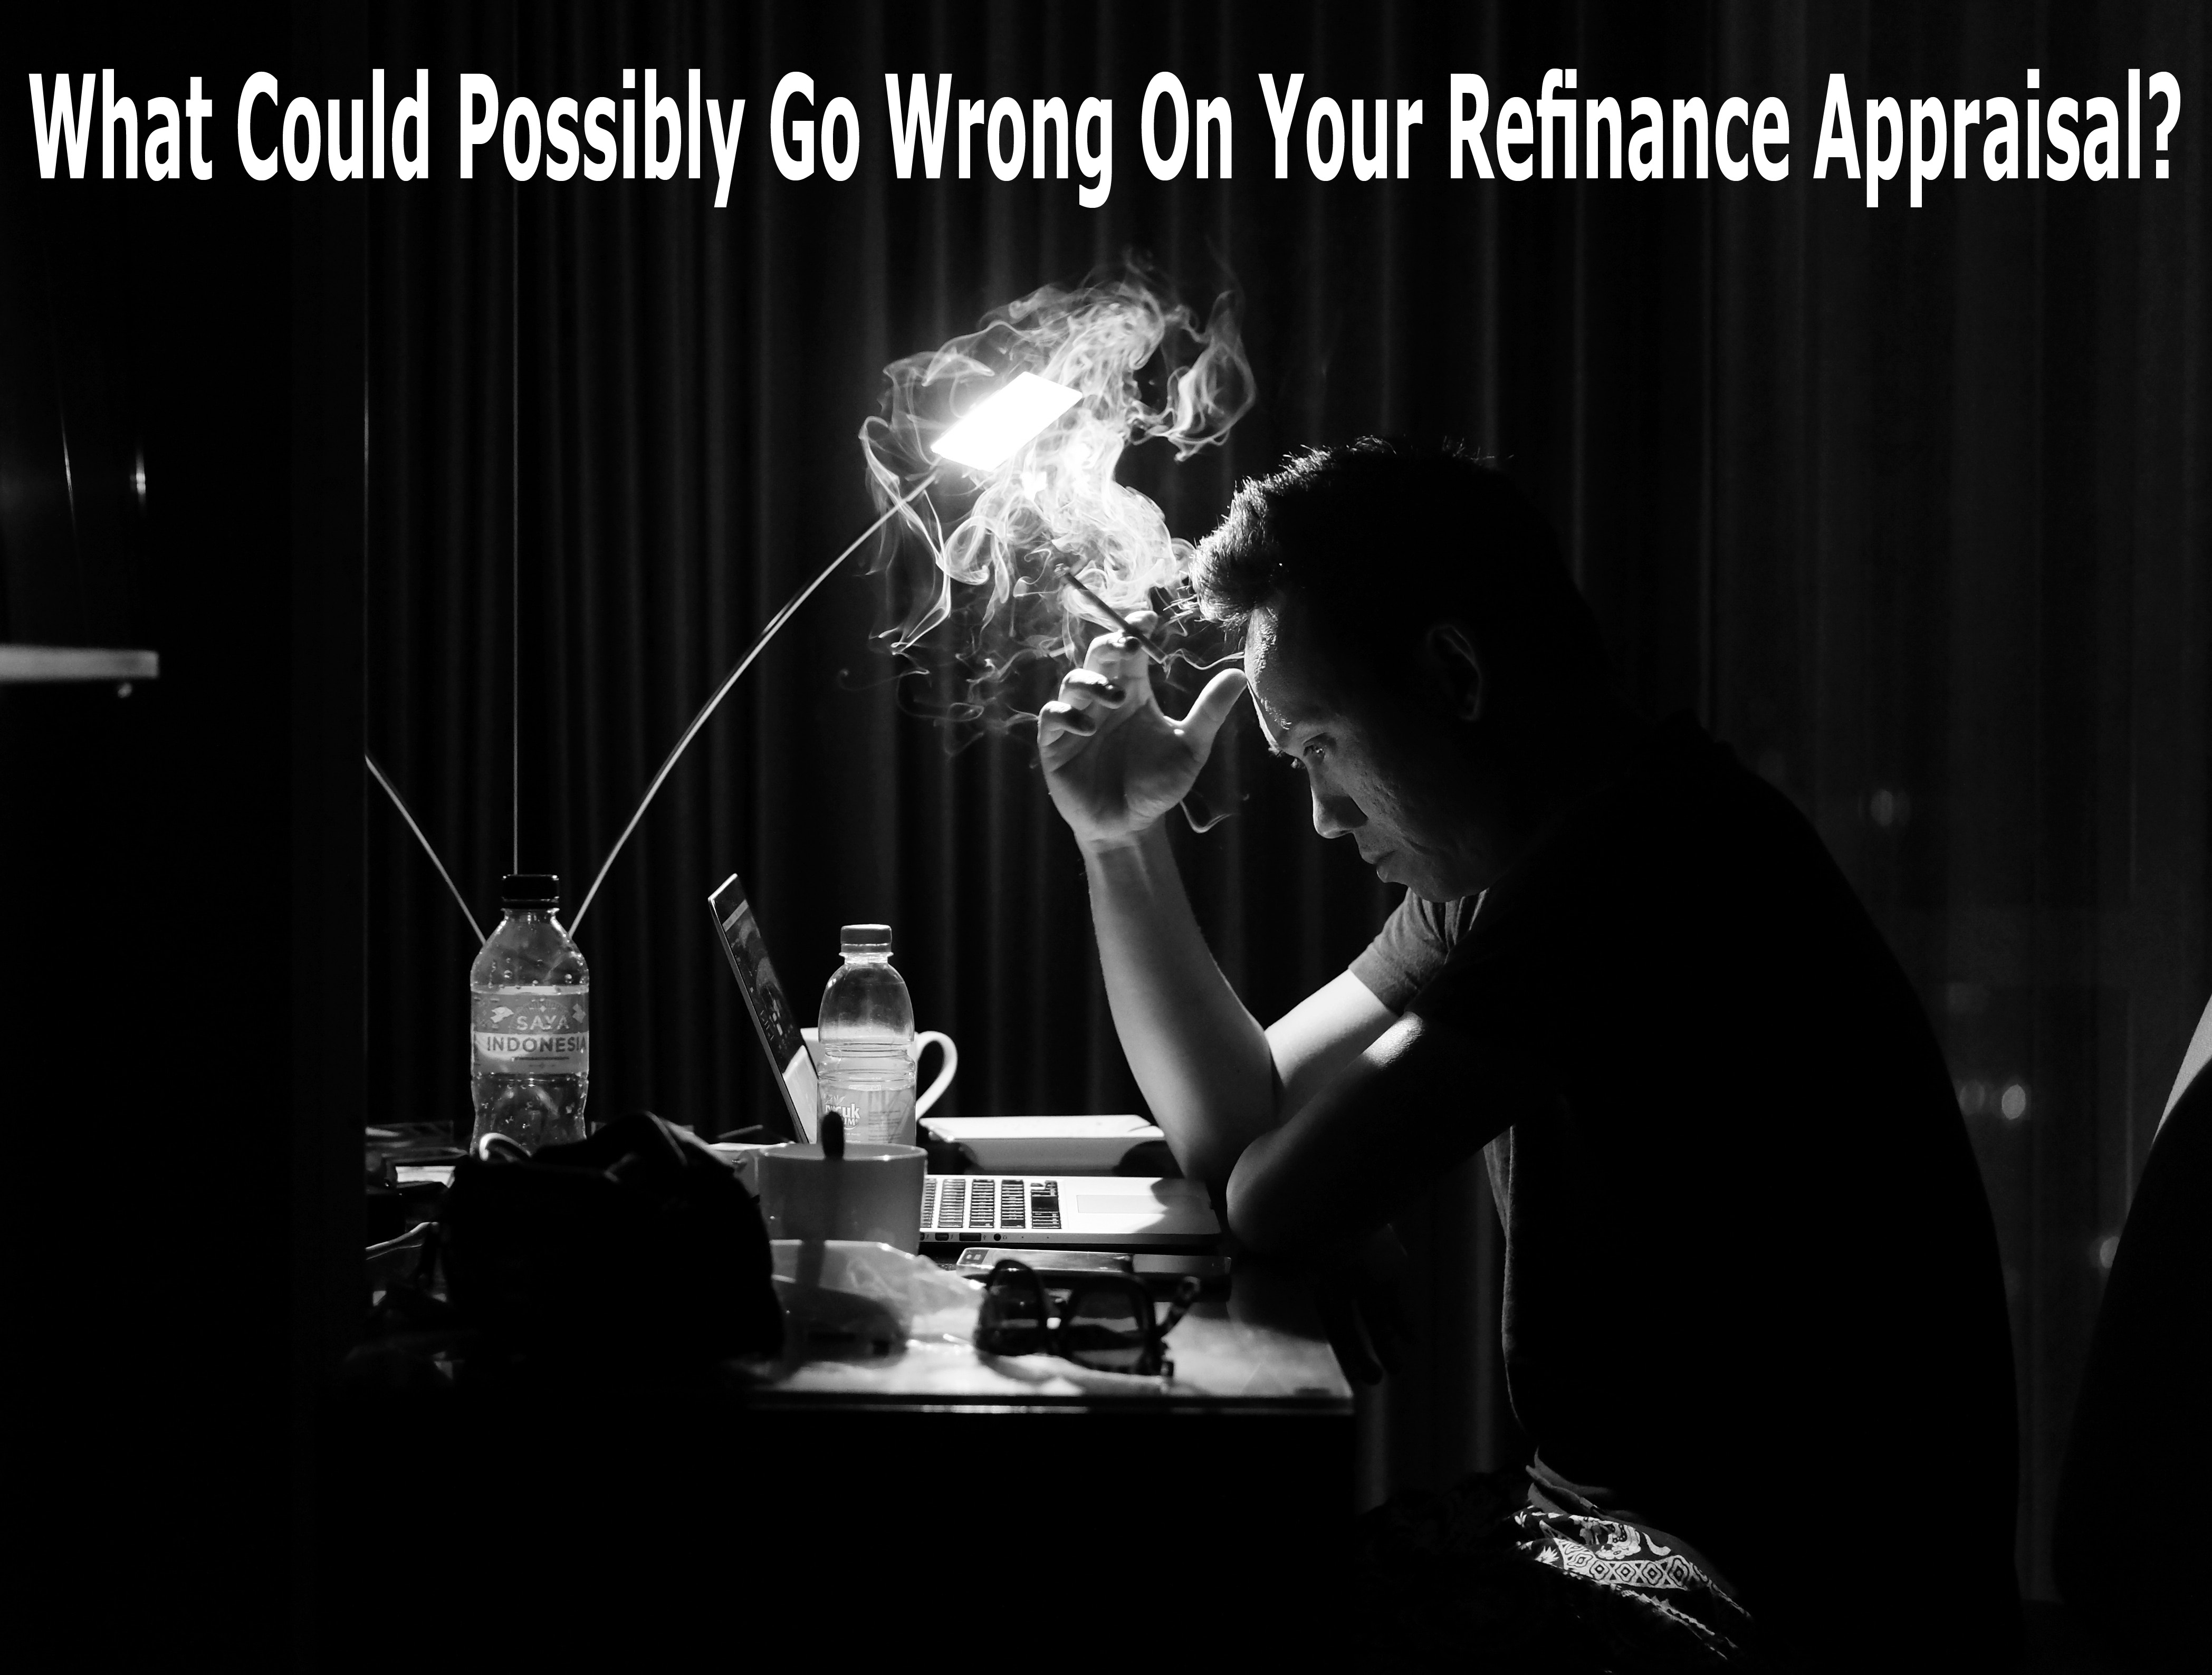 What Could Possibly Go Wrong On Your Refinance Appraisal ...